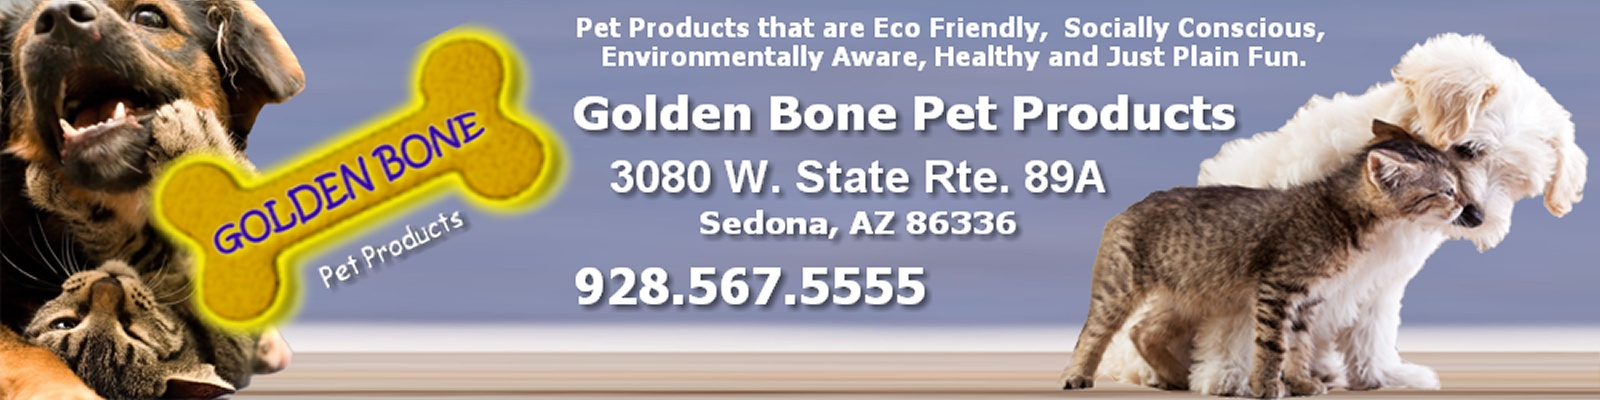 Golden Bone Pet Products, Sedona, Arizona